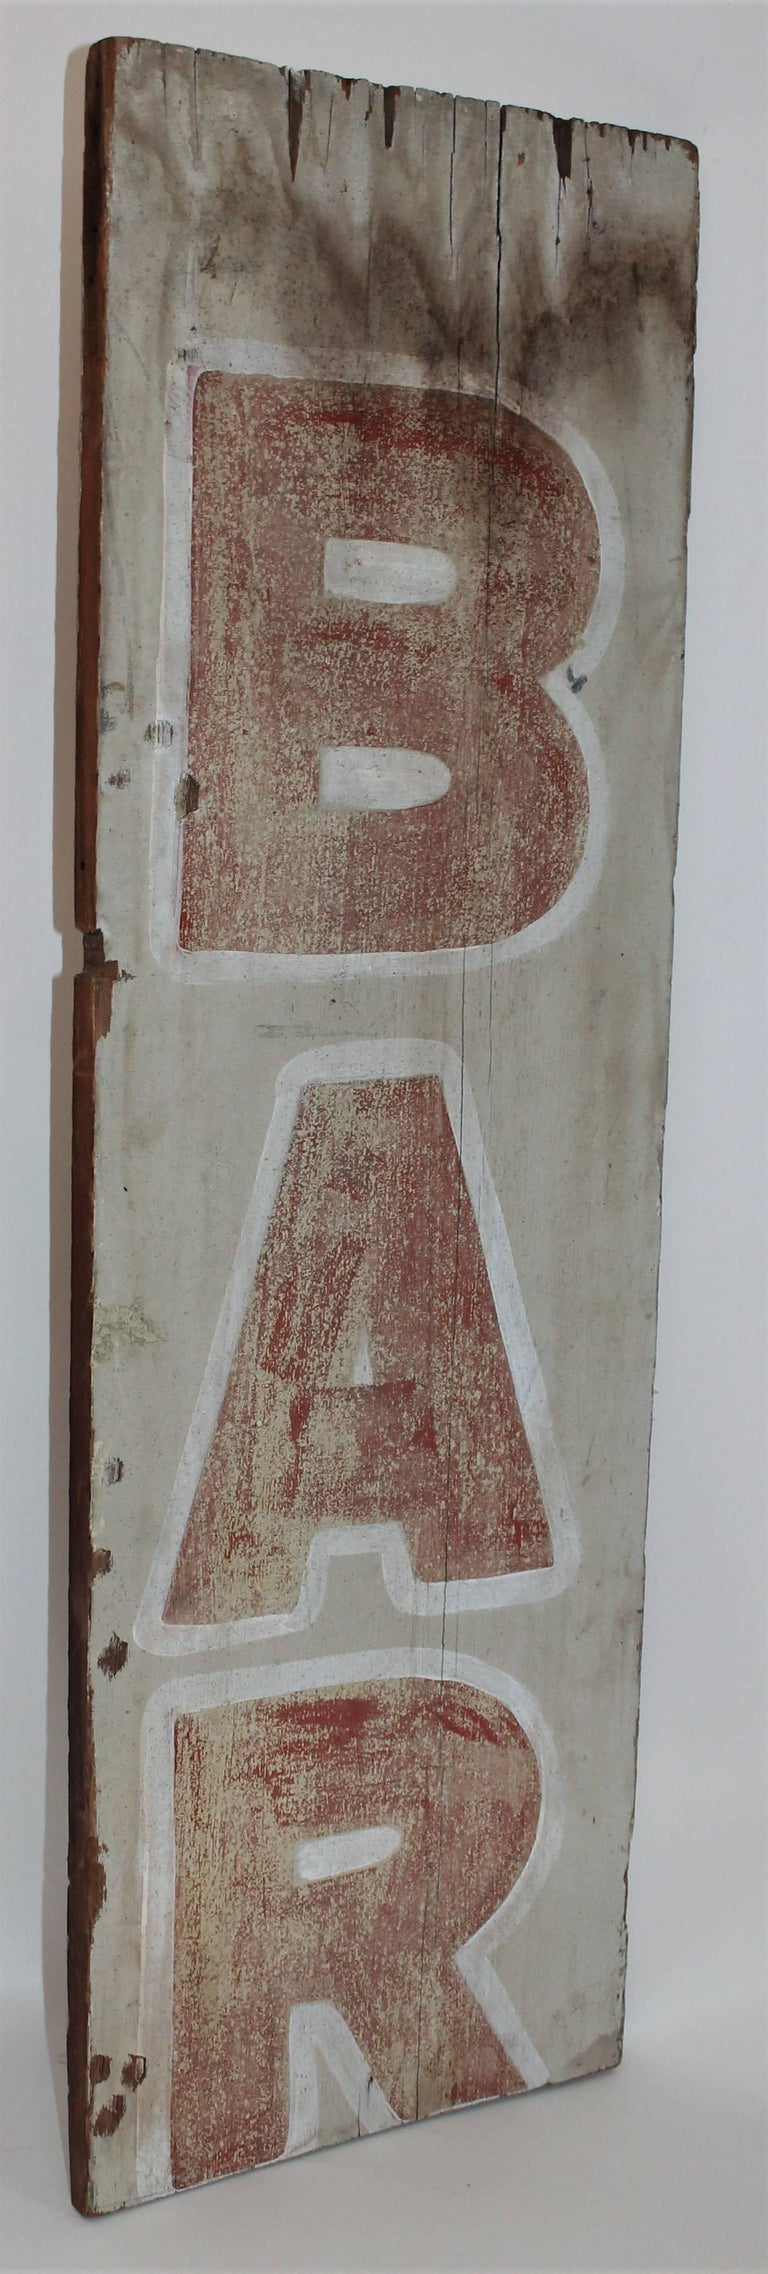 19th Century Bar Trade Sign in Original Paint In Distressed Condition For Sale In Los Angeles, CA